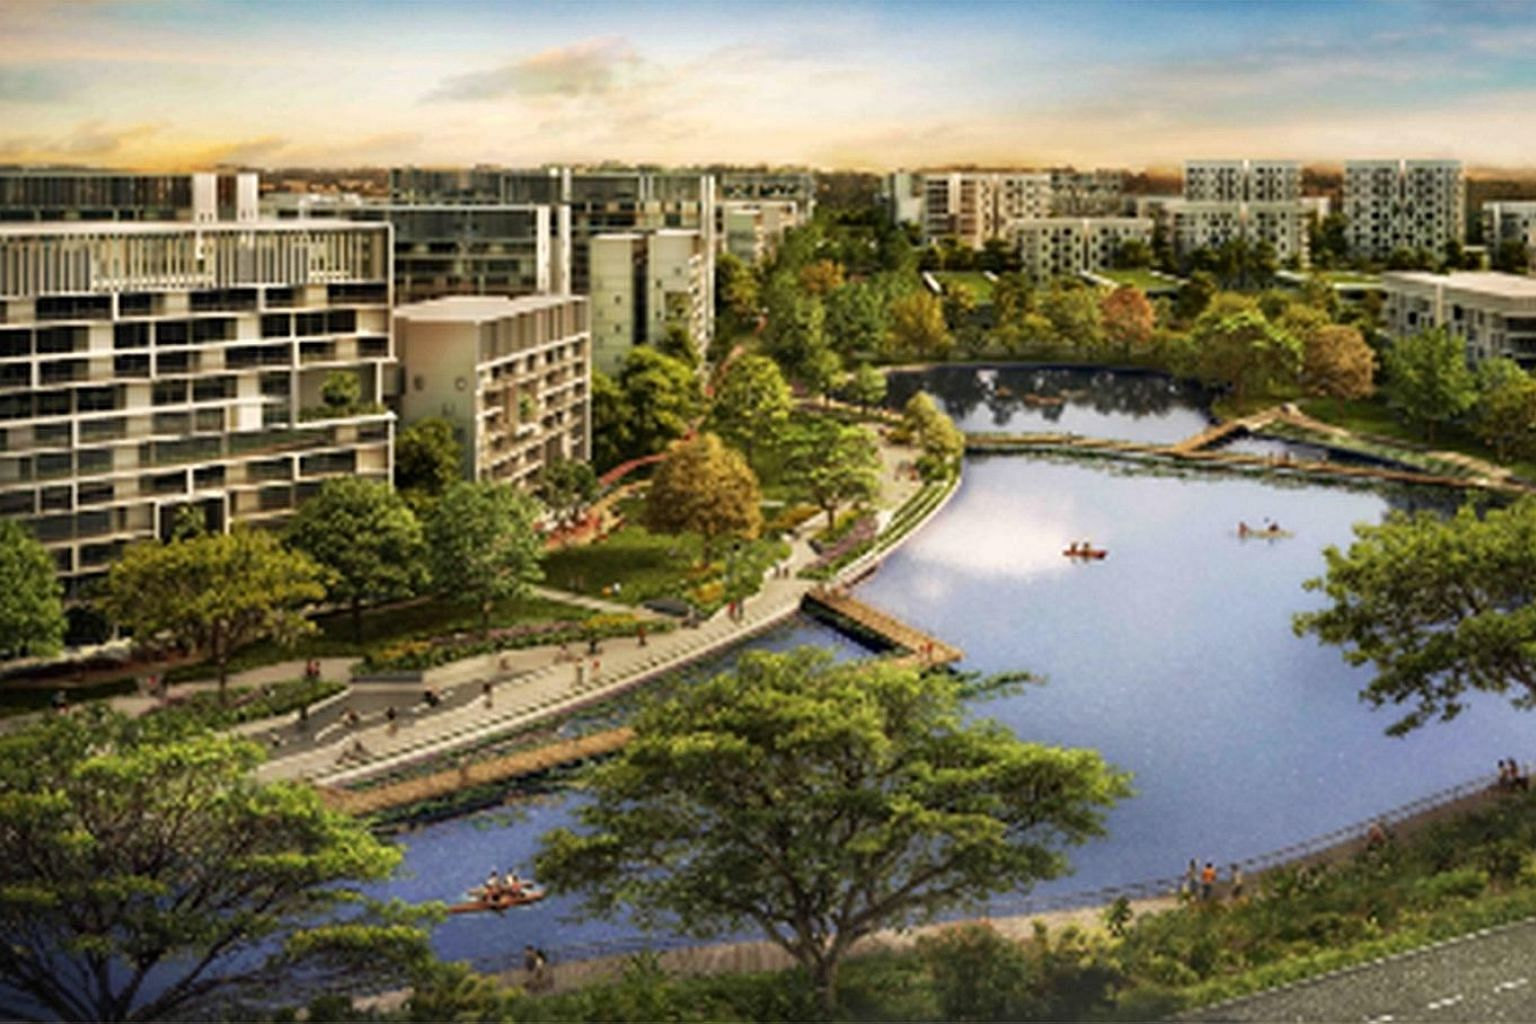 The Housing Board's latest sales exercise includes 1,193 Build-To-Order flats in the Garden District of the Tengah estate in western Singapore. Another 987 units will be at the nearby Plantation District.